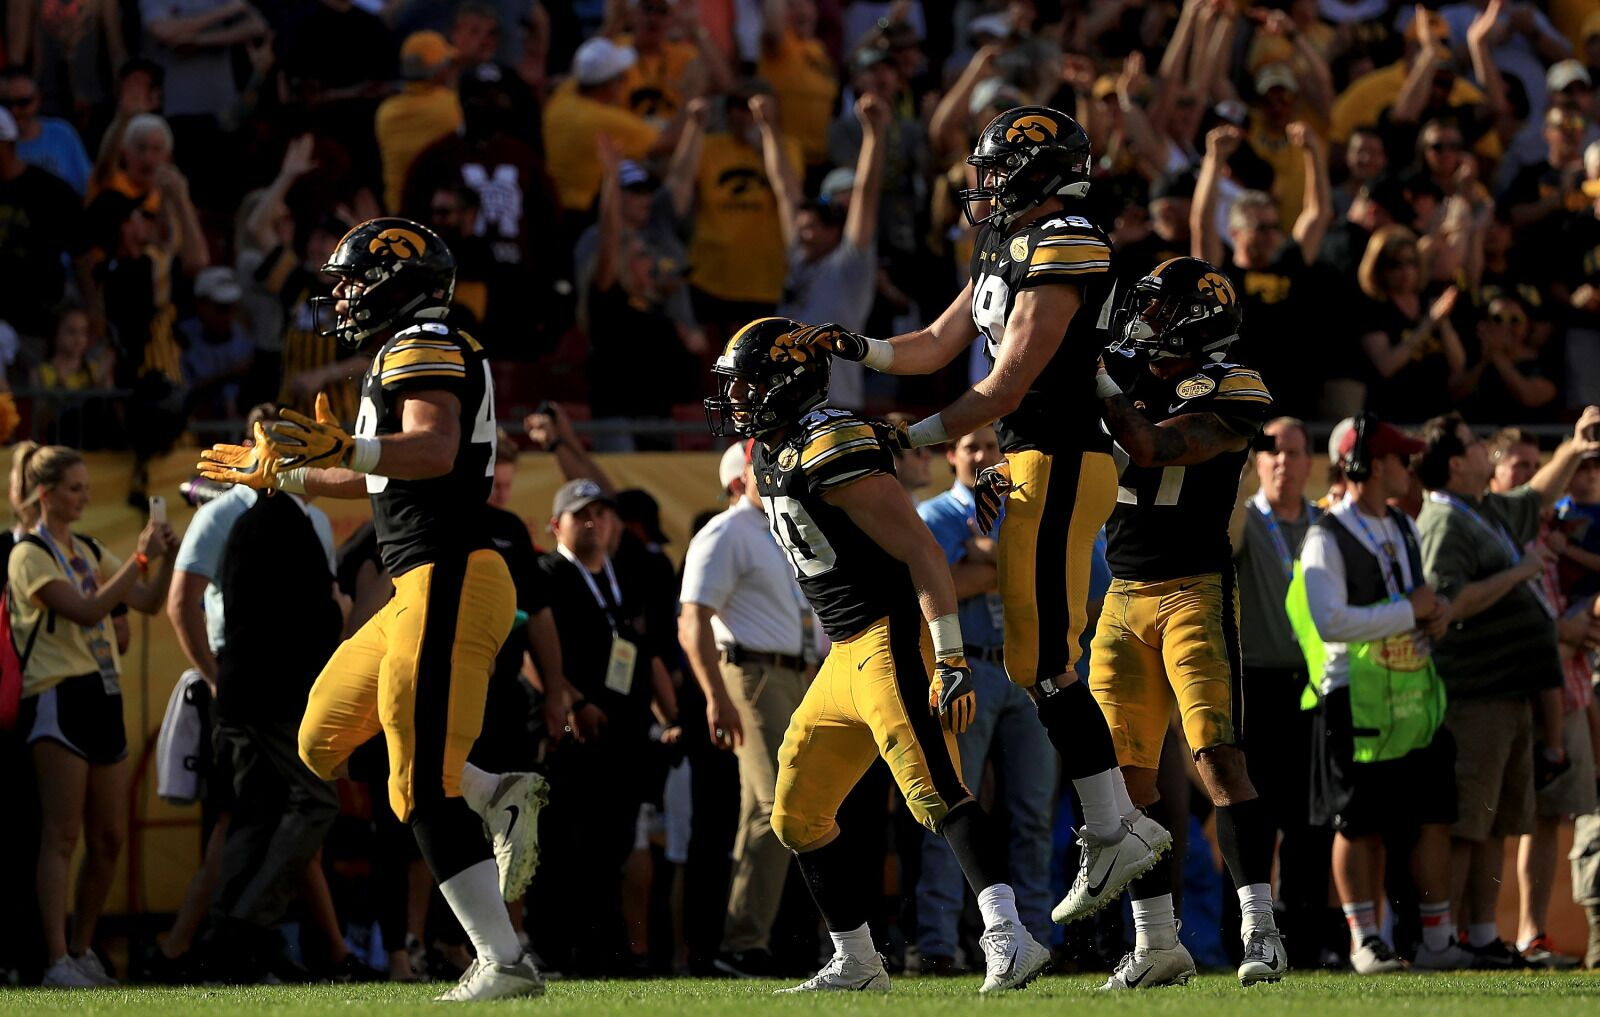 Iowa football: Reactions to Miami (OH) depth chart release